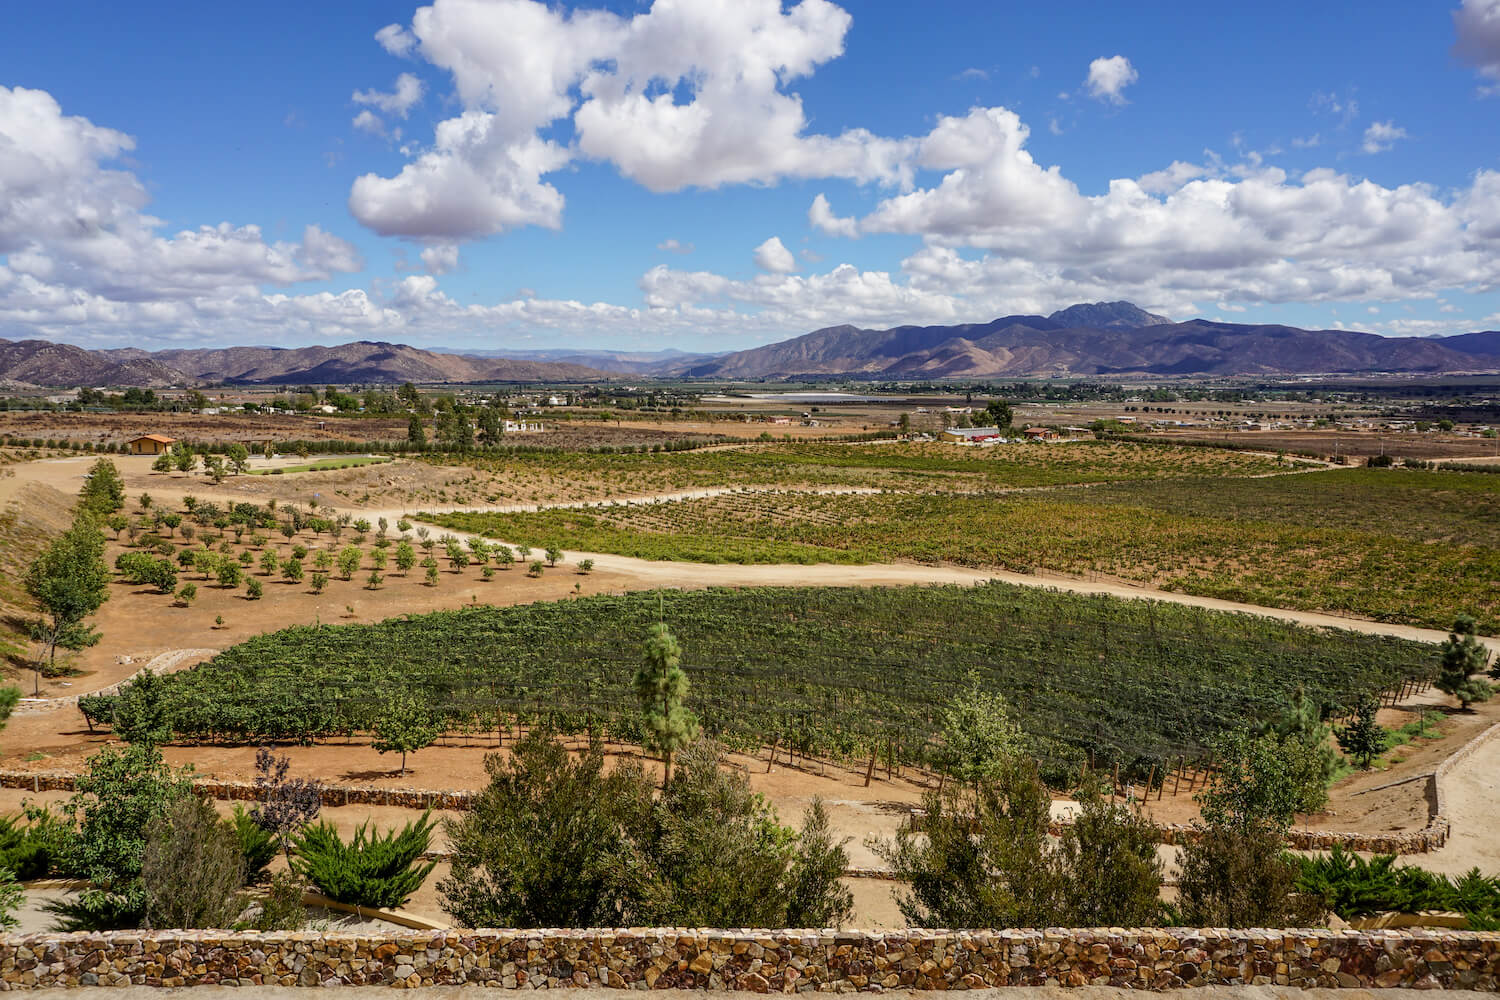 Views from Las Nubes Winery, Valle de Guadalupe, Mexico